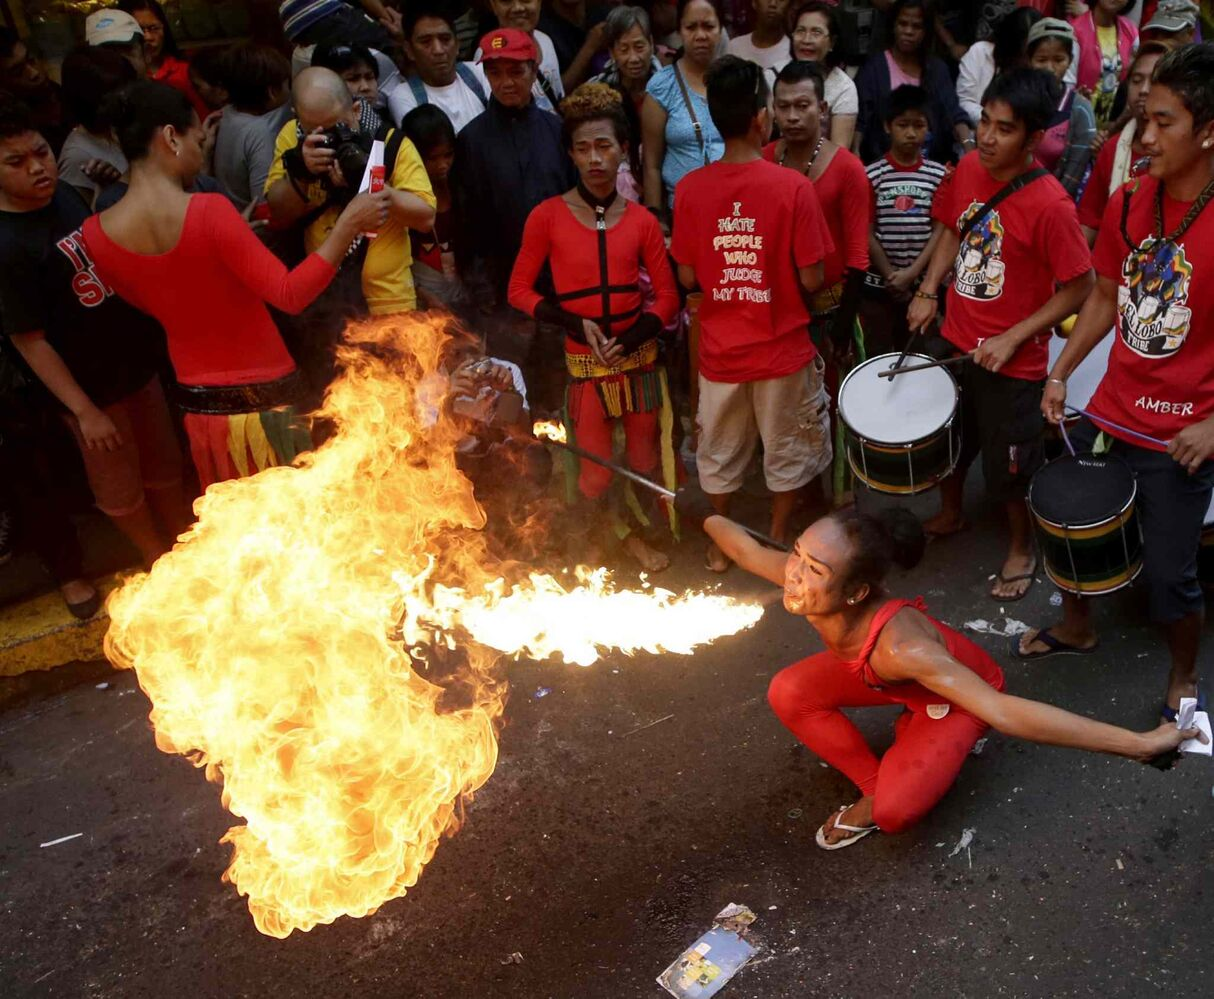 A fire-eater performs in front of a business establishment in celebration of Chinese New Year at Manila's Chinatown district of Binondo, Philippines on Friday, Jan. 31, 2014.